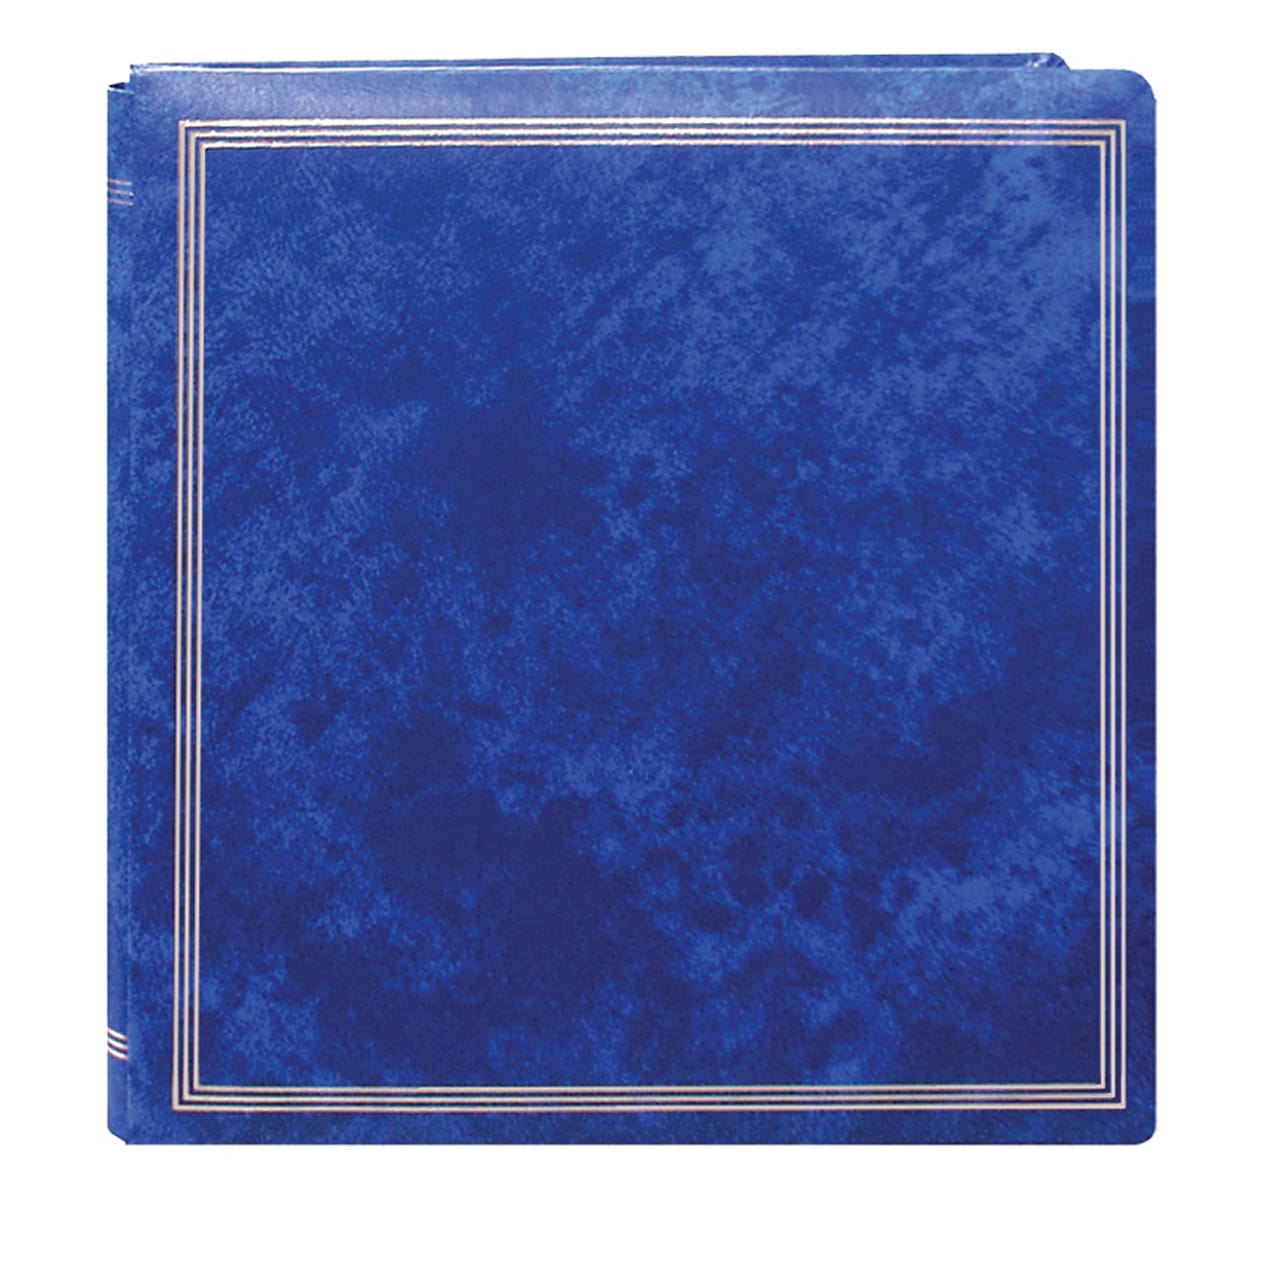 Pioneer Photo Albums Pioneer Postbound Deluxe Royal Blue Leatherette Cover X-Pando Magnetic Album with 2 bonus Refill Packs